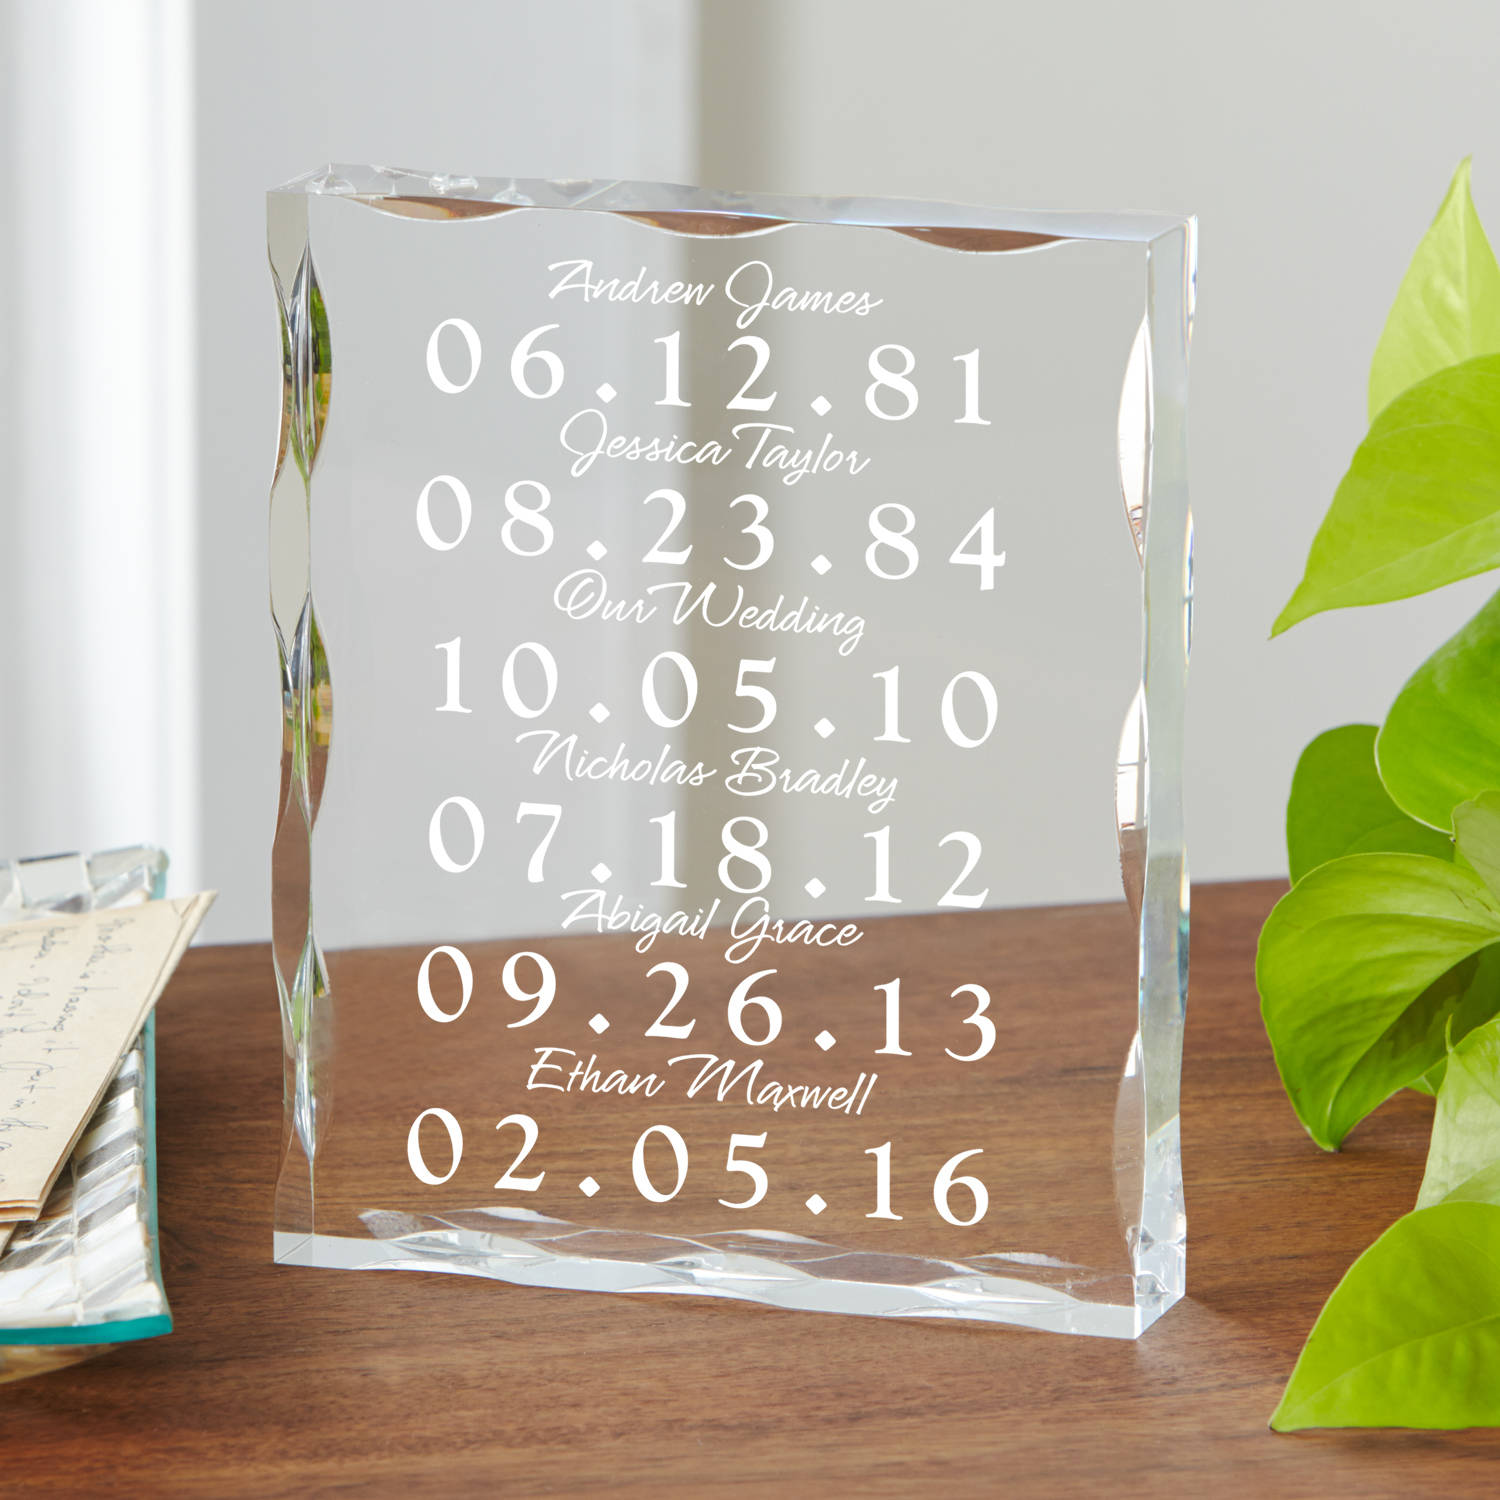 Personalized What a Difference a Day Makes Acrylic Block